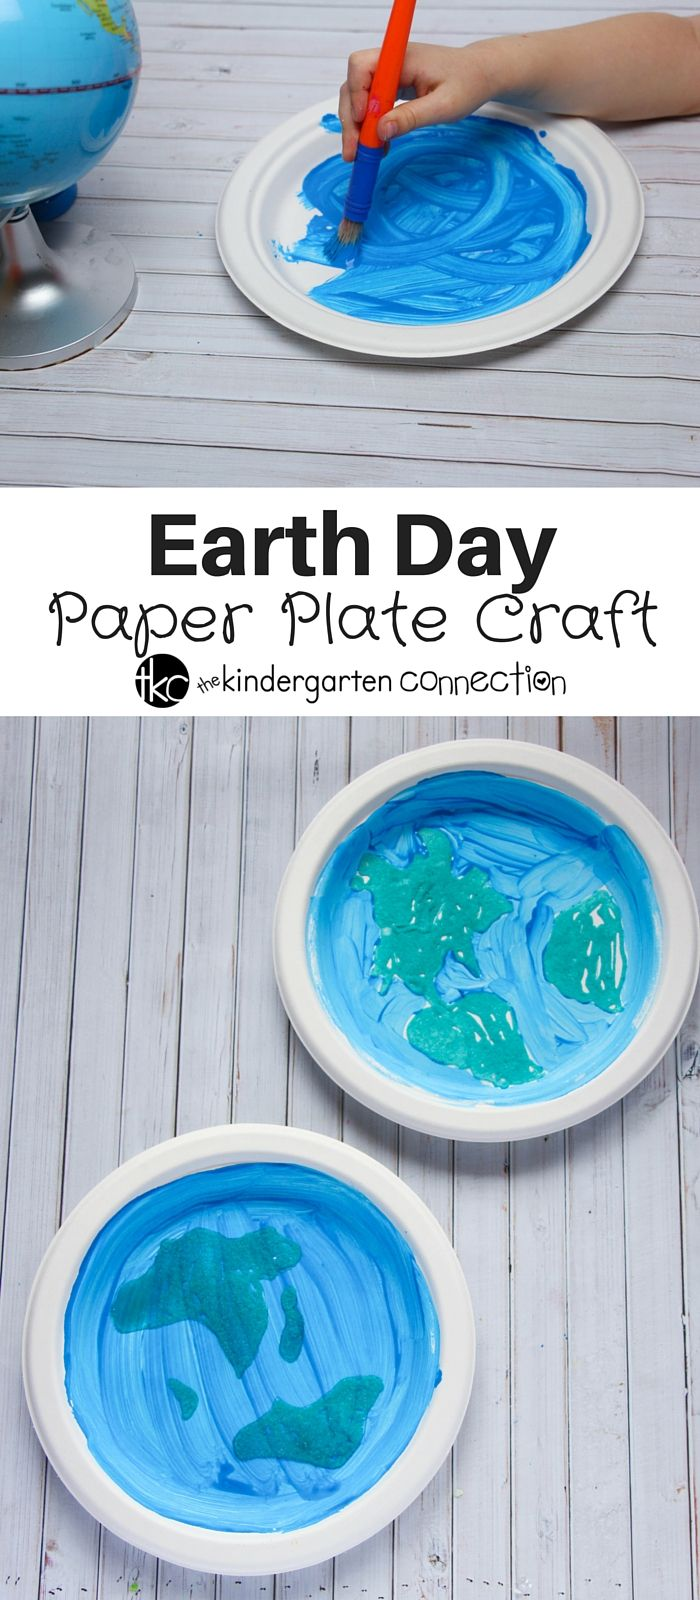 This Paper Plate Craft Is A Fun Hands On Way To Celebrate Earth Day Simple Make And Great Tie Into Your Activities For Kids